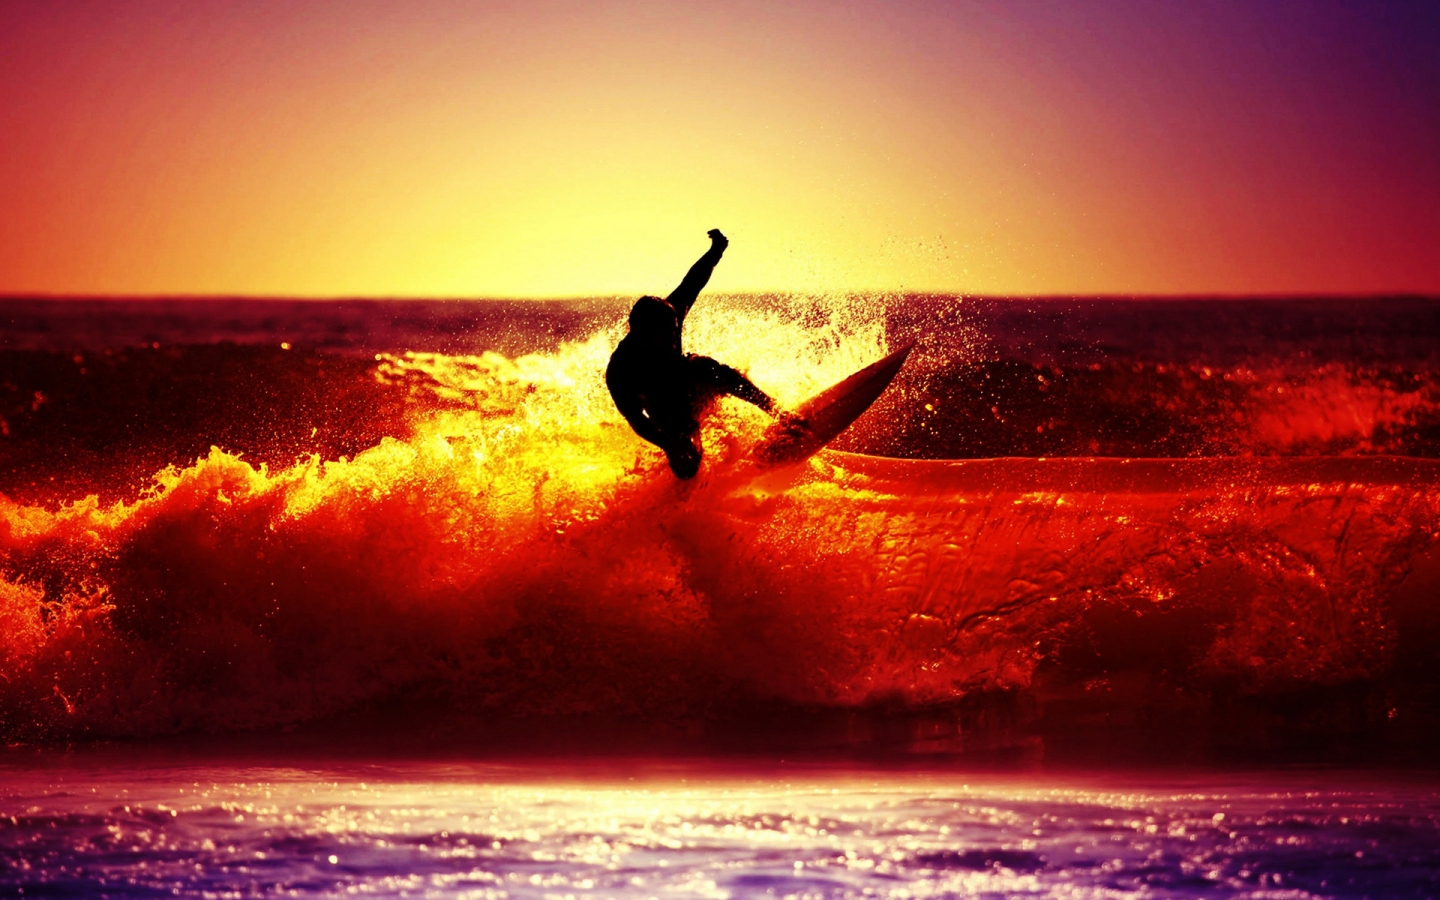 Sunset Surfing for 1440 x 900 widescreen resolution